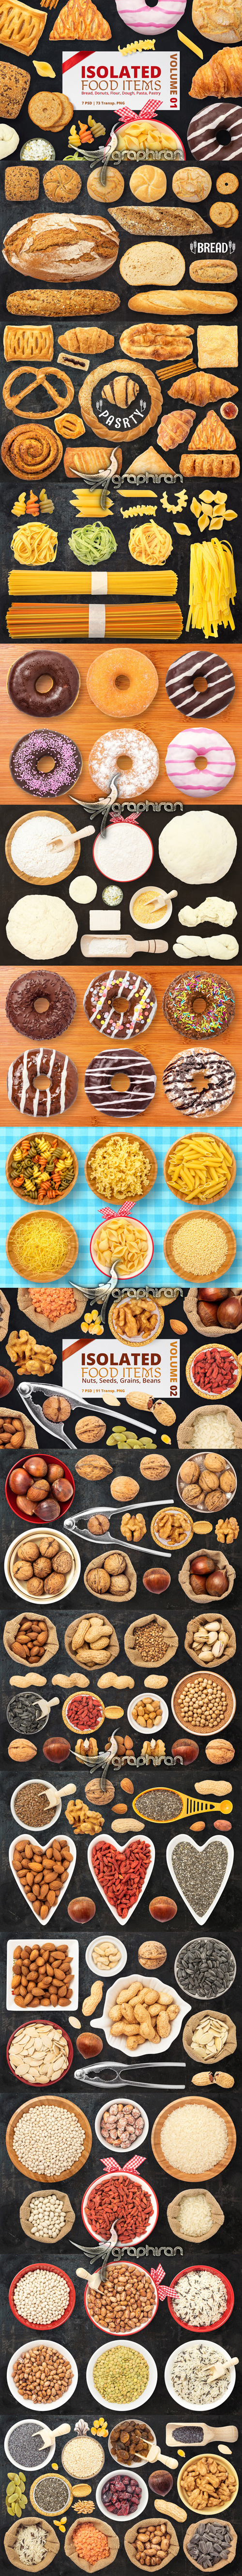 Isolated Food Items + Premade Scenes